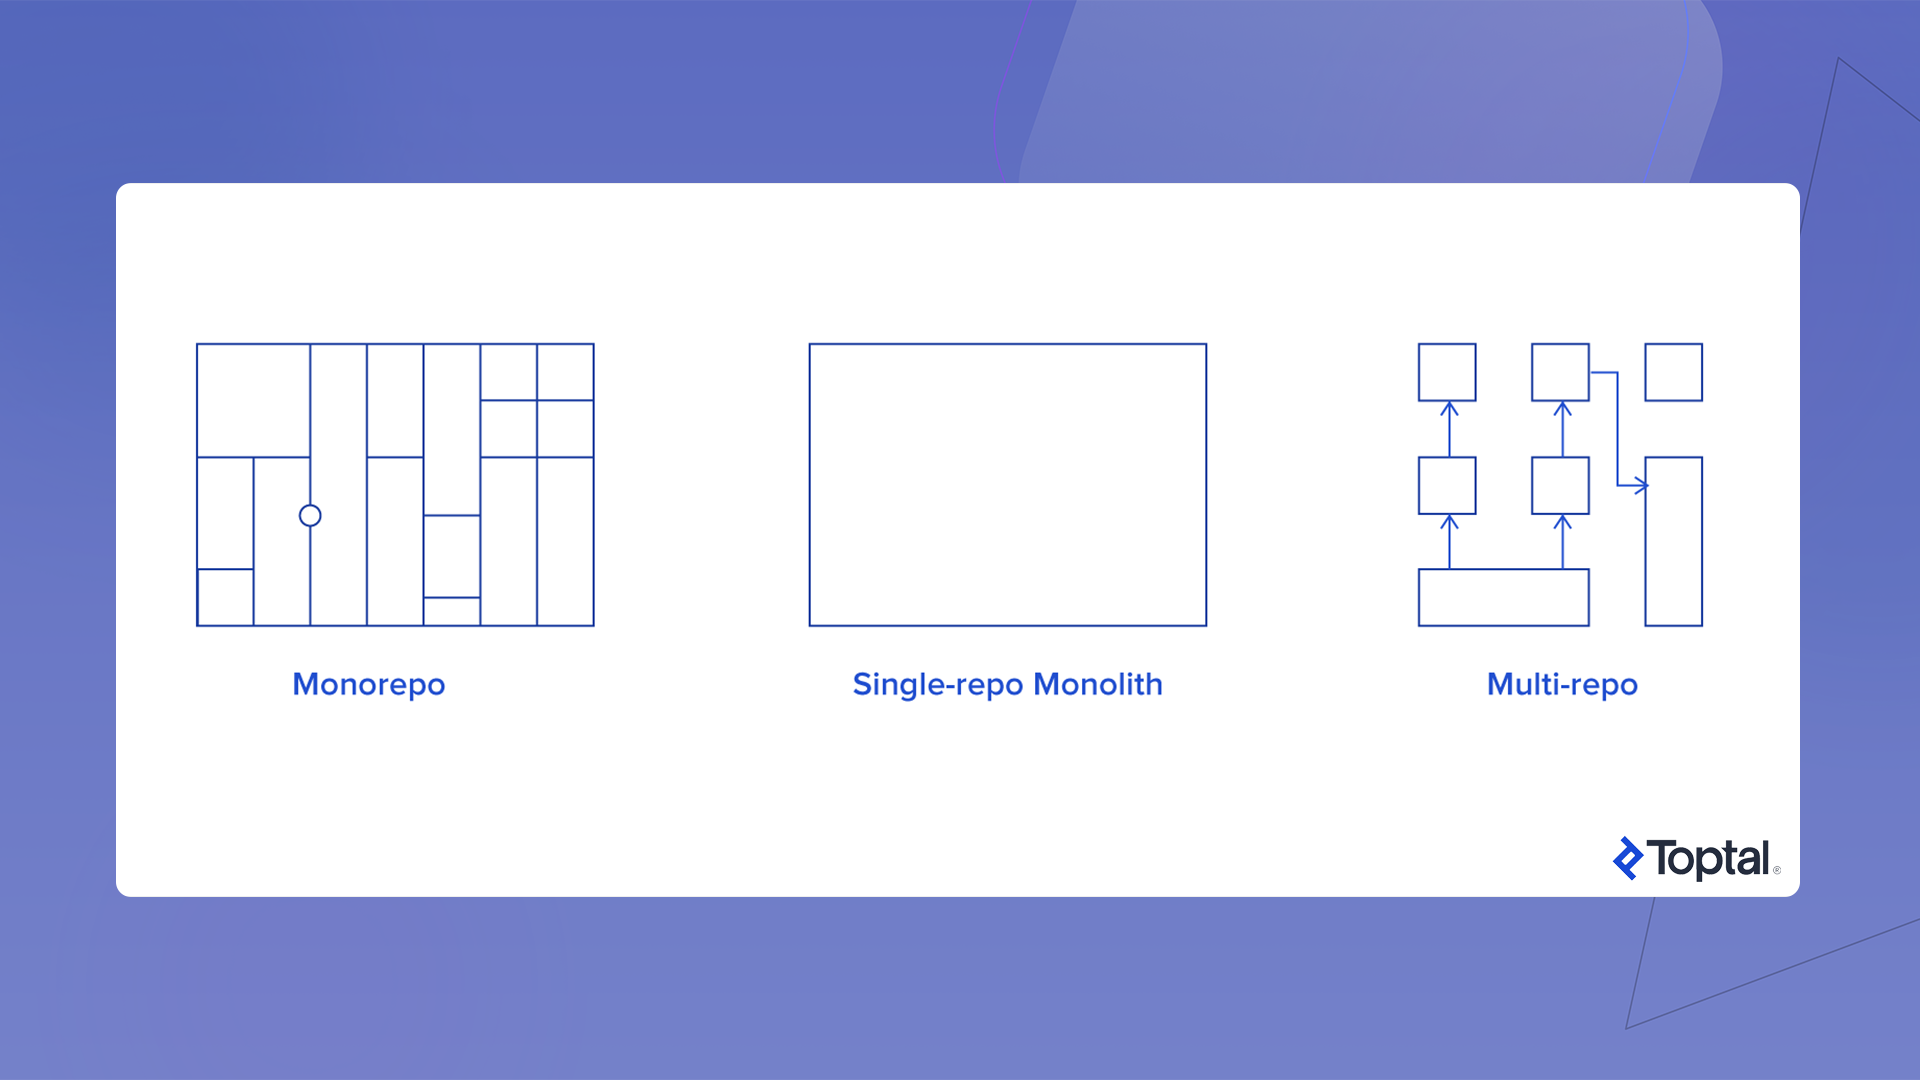 A monorepo is a software development strategy where code for many projects is stored in the same repository